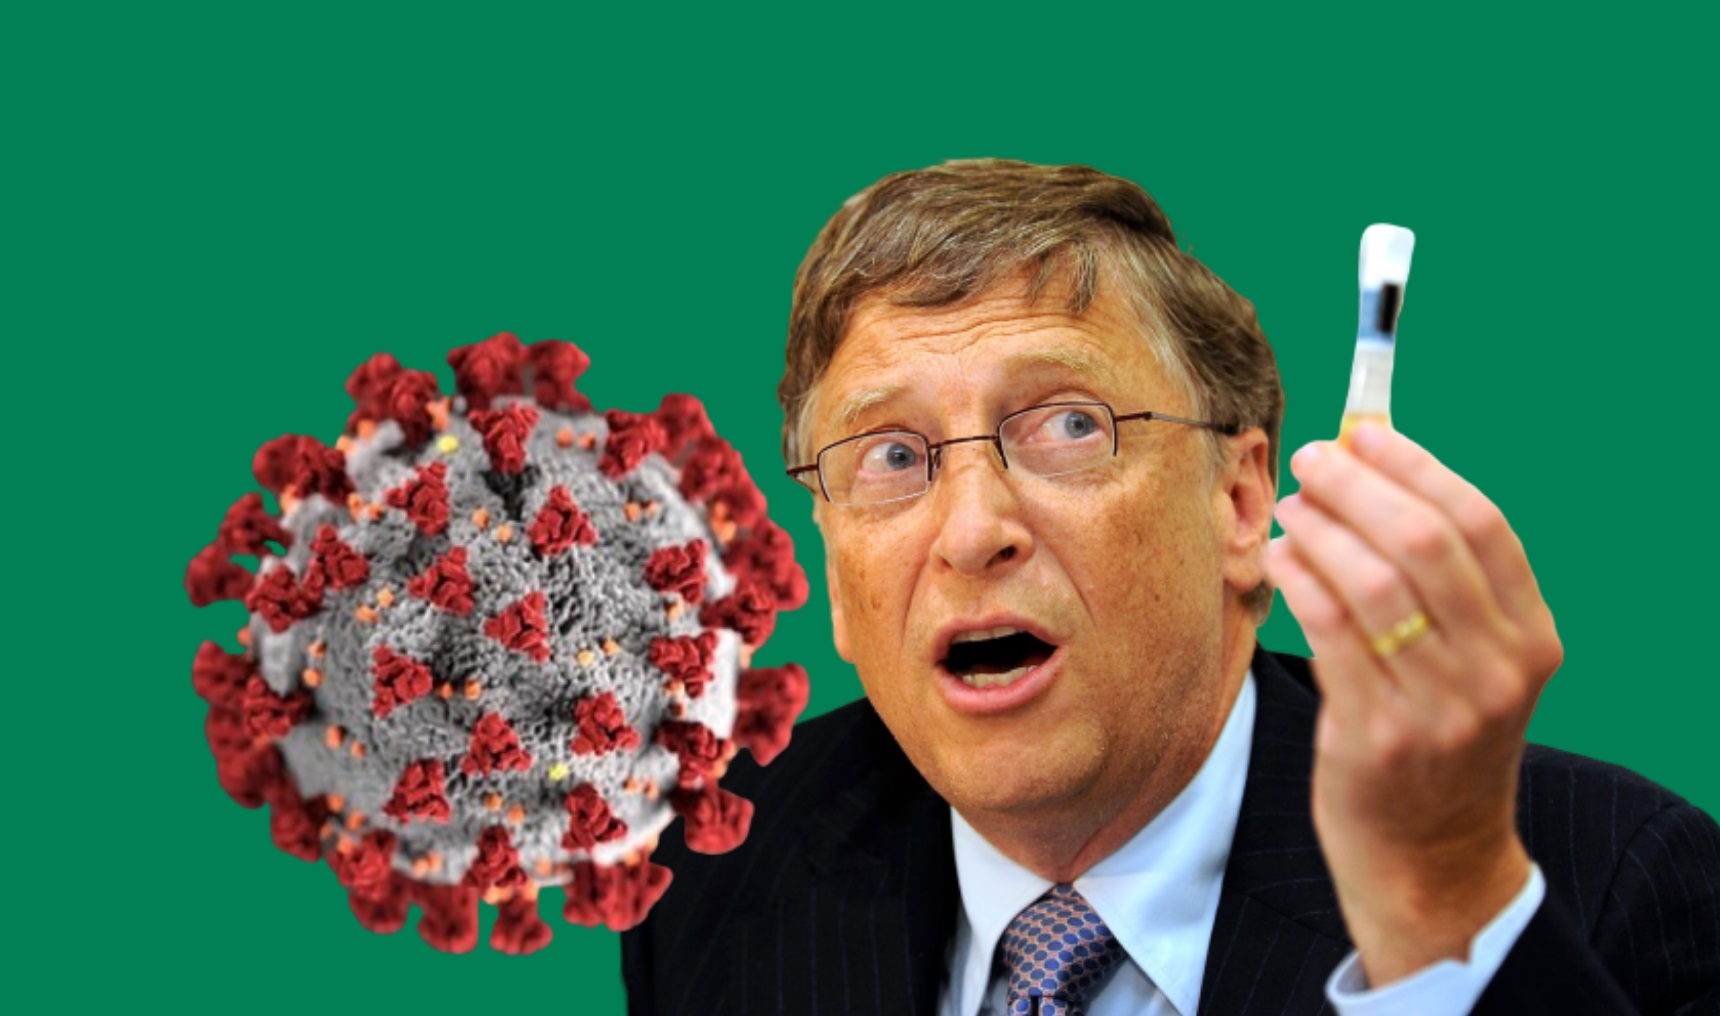 Bill Gates' Quantum Dot Digital Tattoo Implant to Track COVID-19 Vaccine Compliance